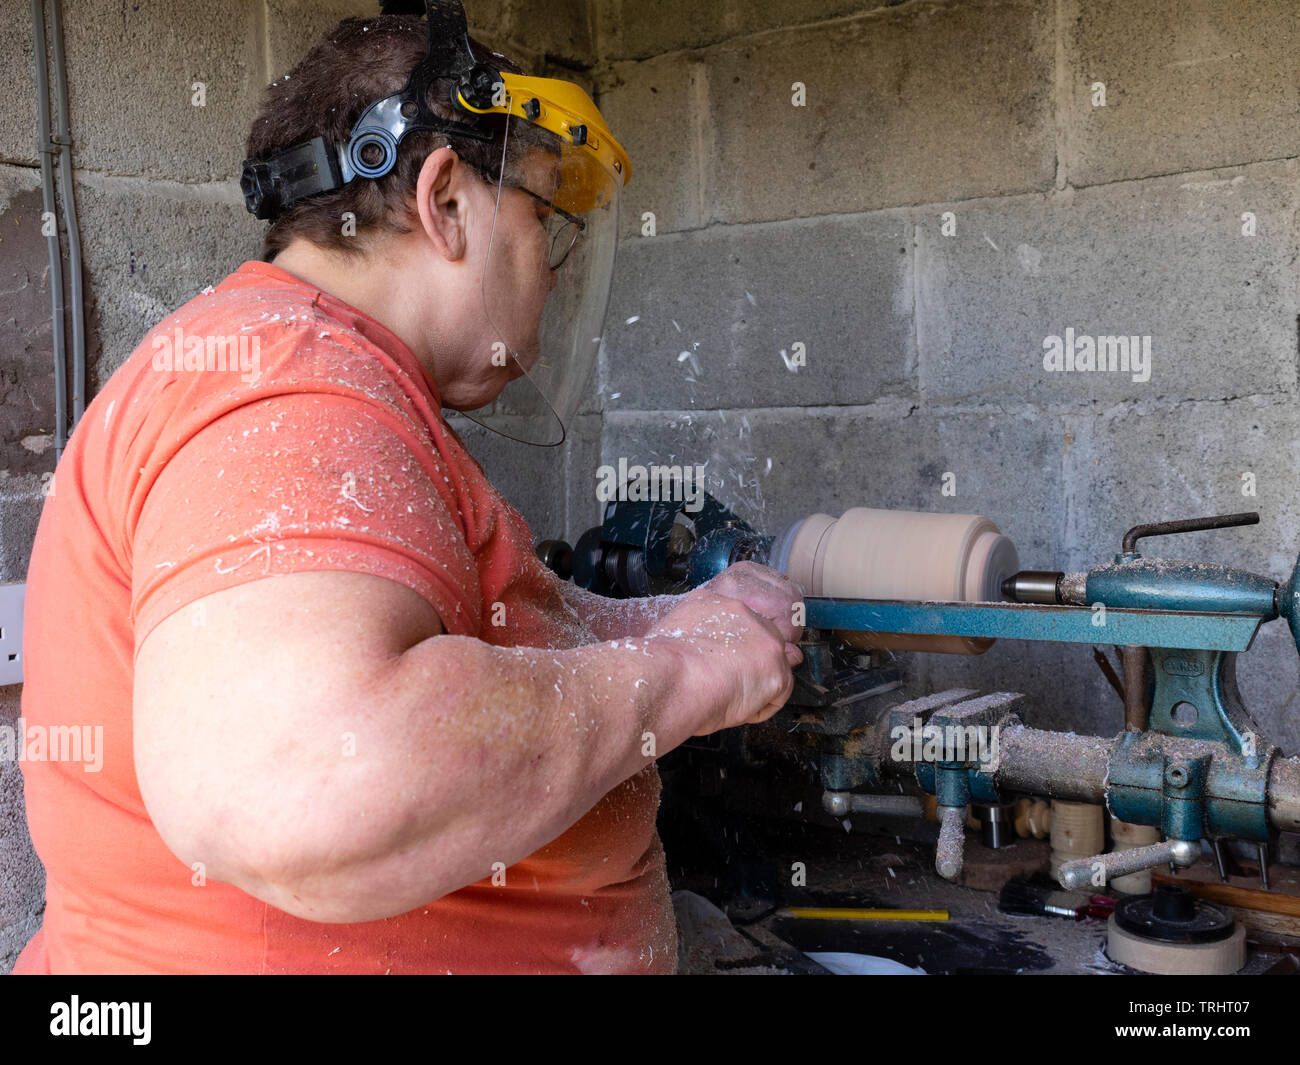 Mature, 65 year old, female crafter turning a wooden vase on her lathe - Stock Image